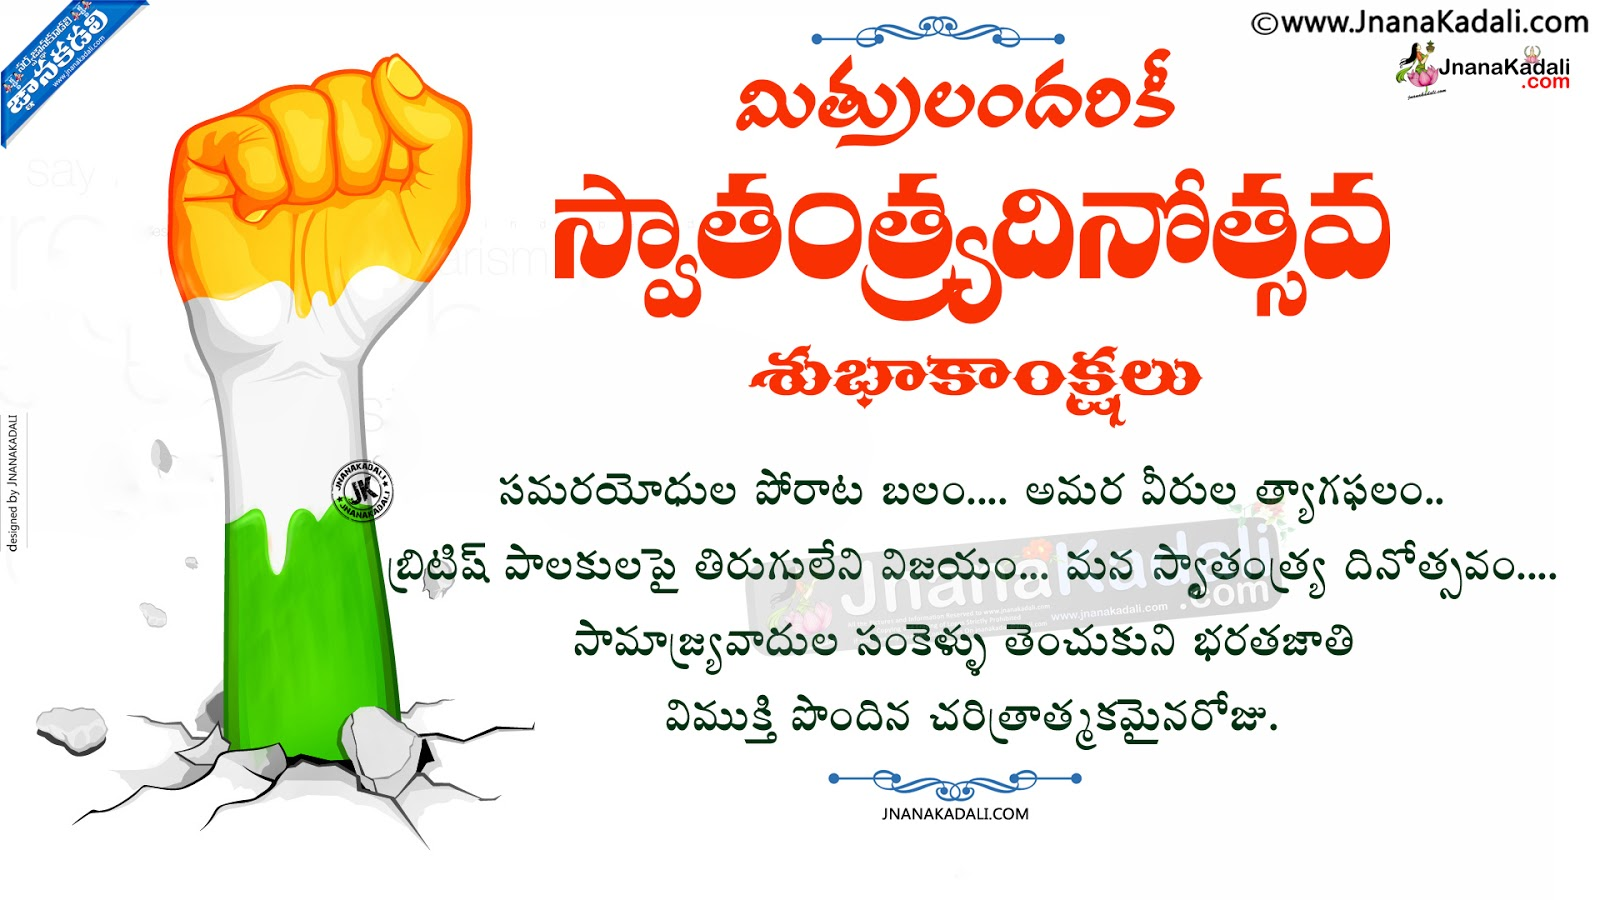 essay on independence day interpersonal communication essay  happy independence day quotes in telugu 70th independence day essay speech quotes wishes